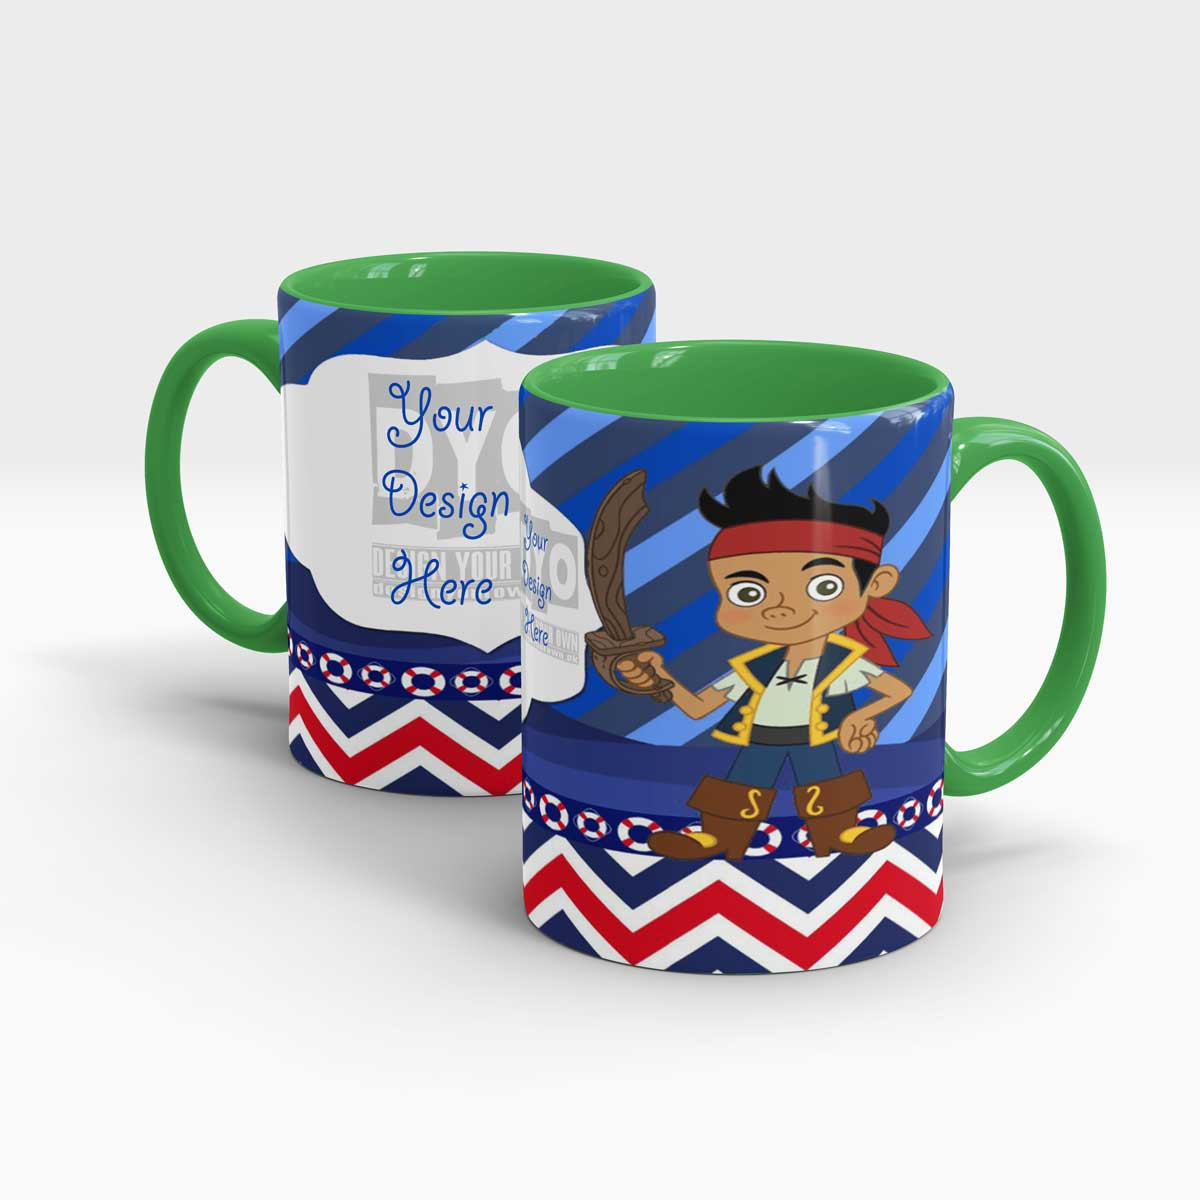 Hunting Gifts For Kids  Treasure Hunt Personalized Gift Mug for Kids Design Your Own